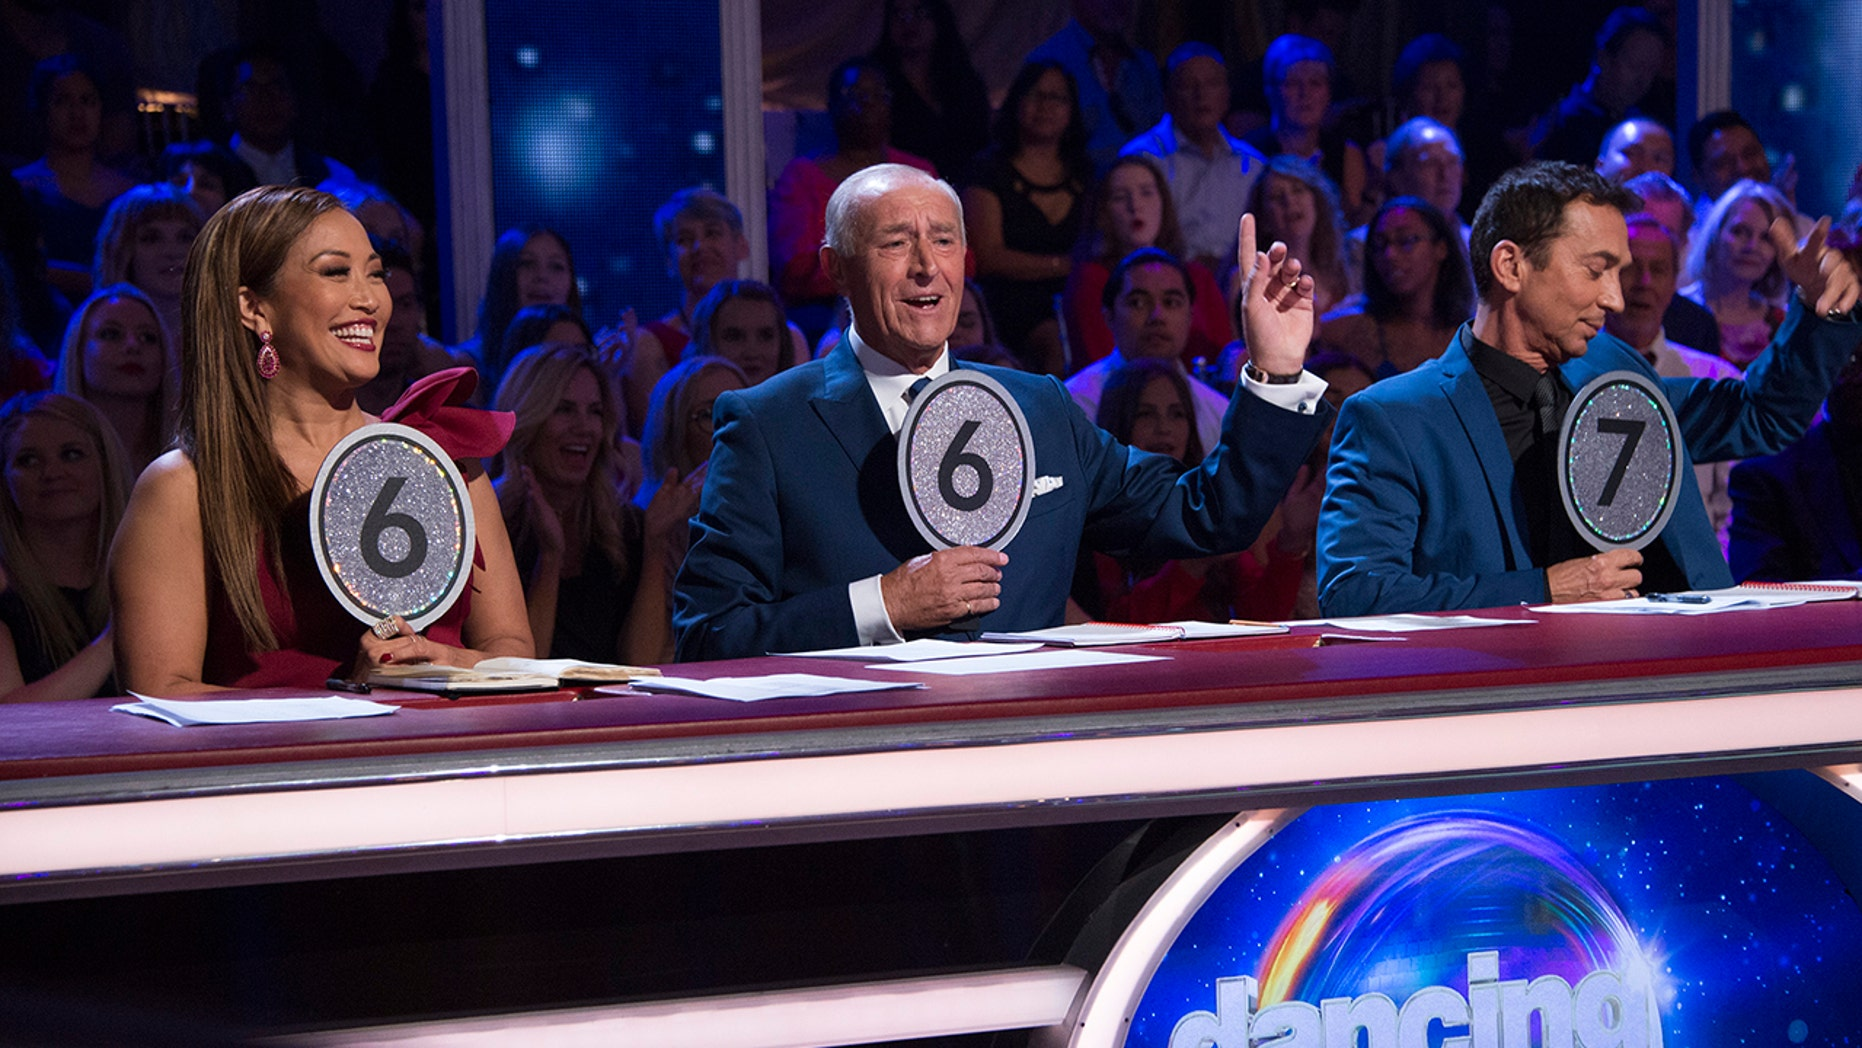 """Dancing with the Stars"" judges from l-r: Carrie Ann Inaba, Len Goodman and Bruno Tonioli."